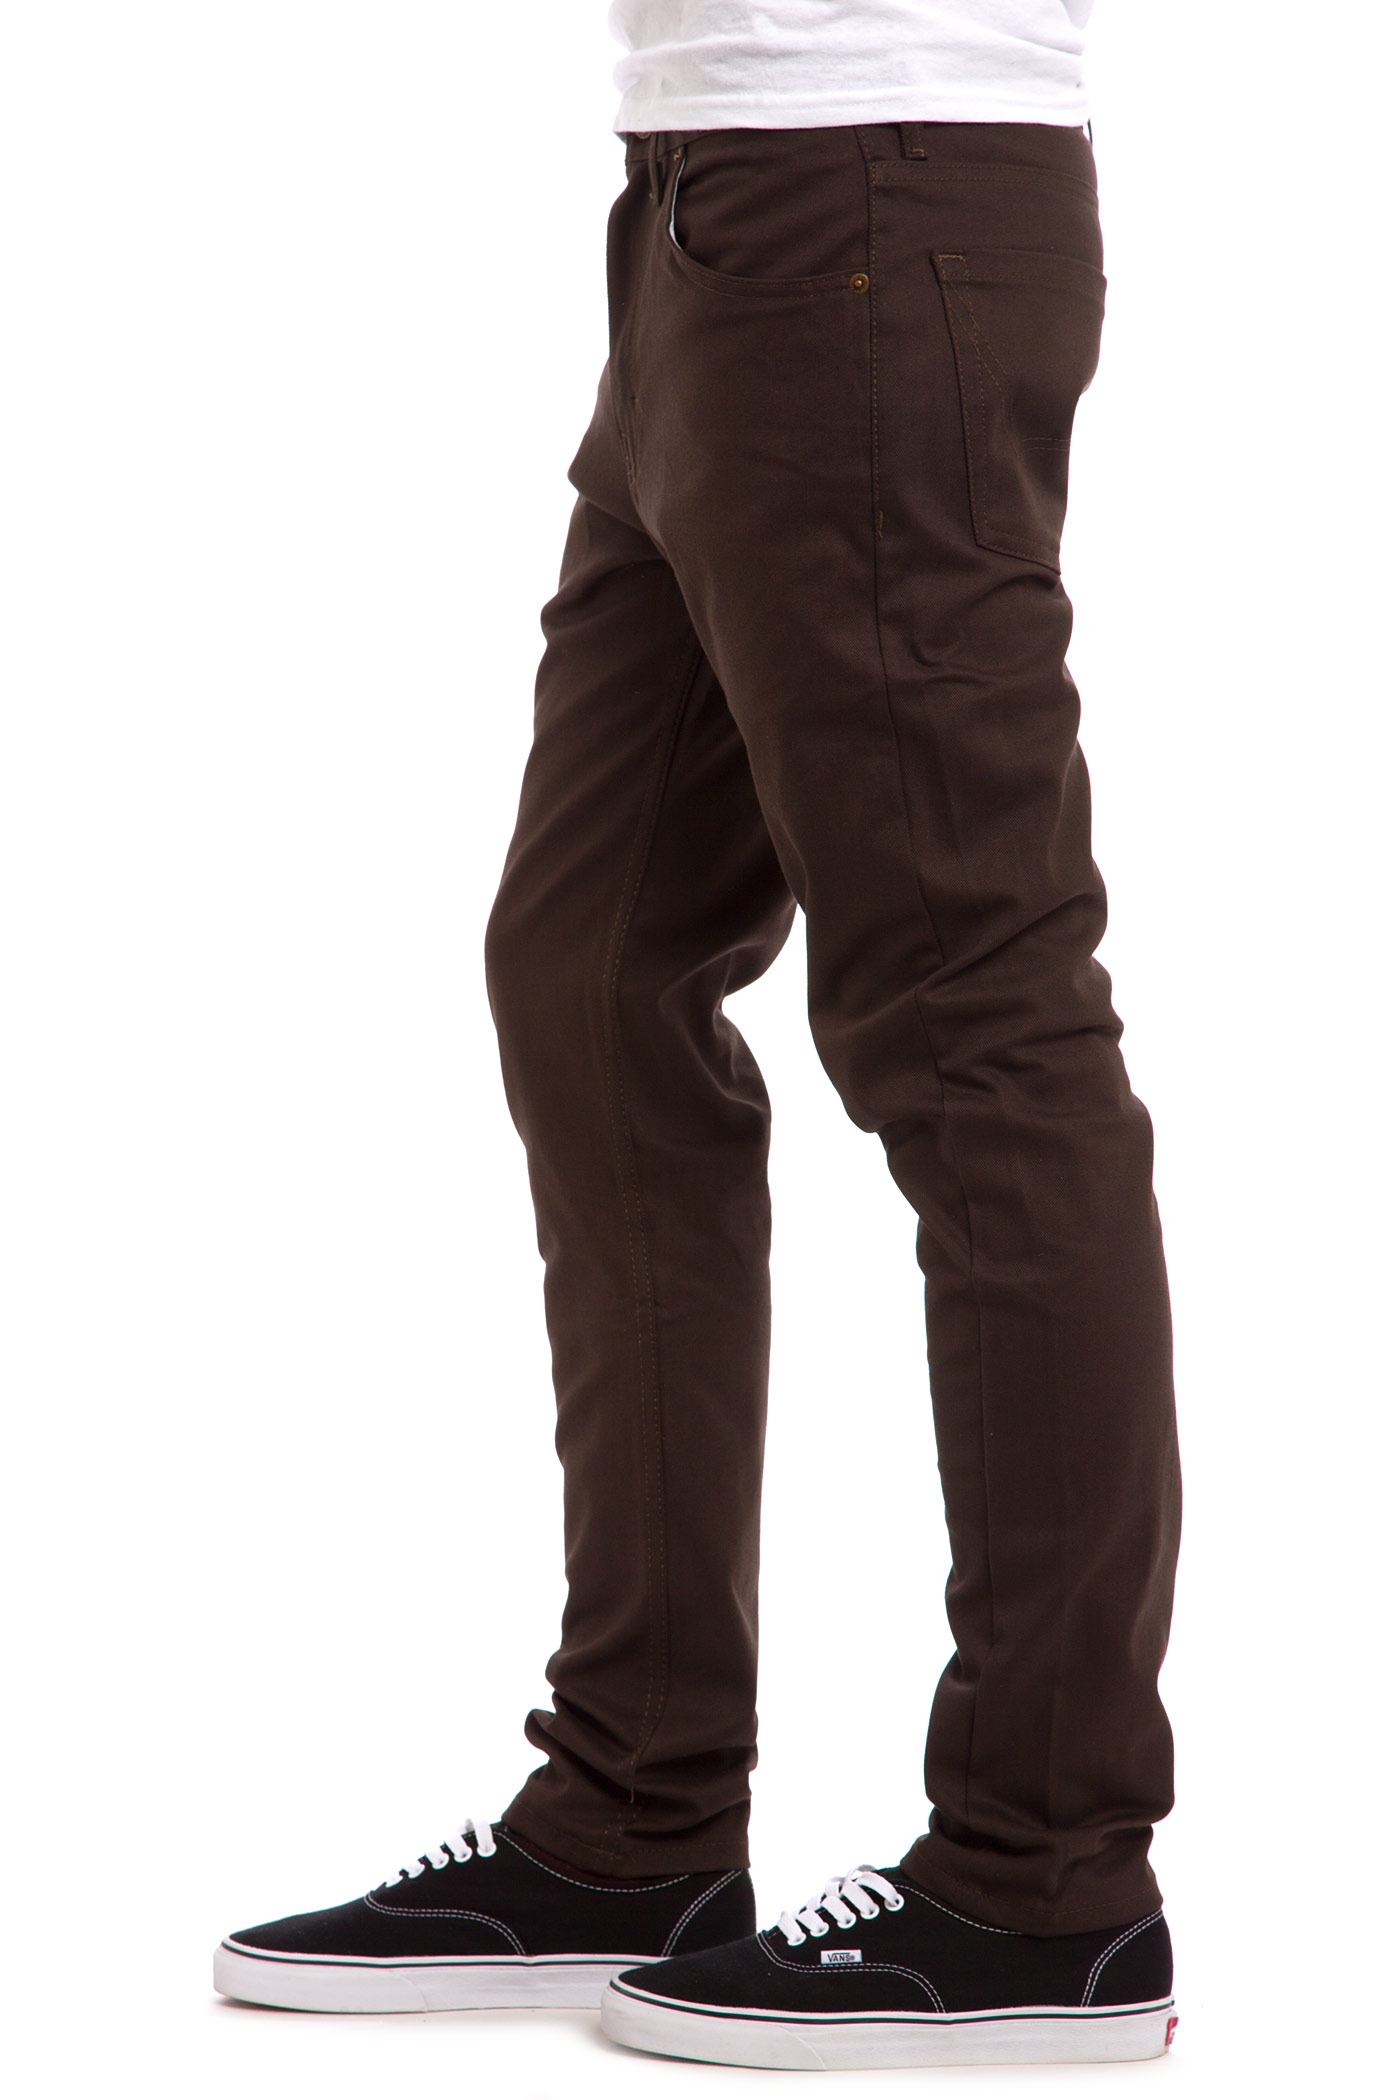 Dickies Slim Skinny Pants (dark brown) buy at skatedeluxe